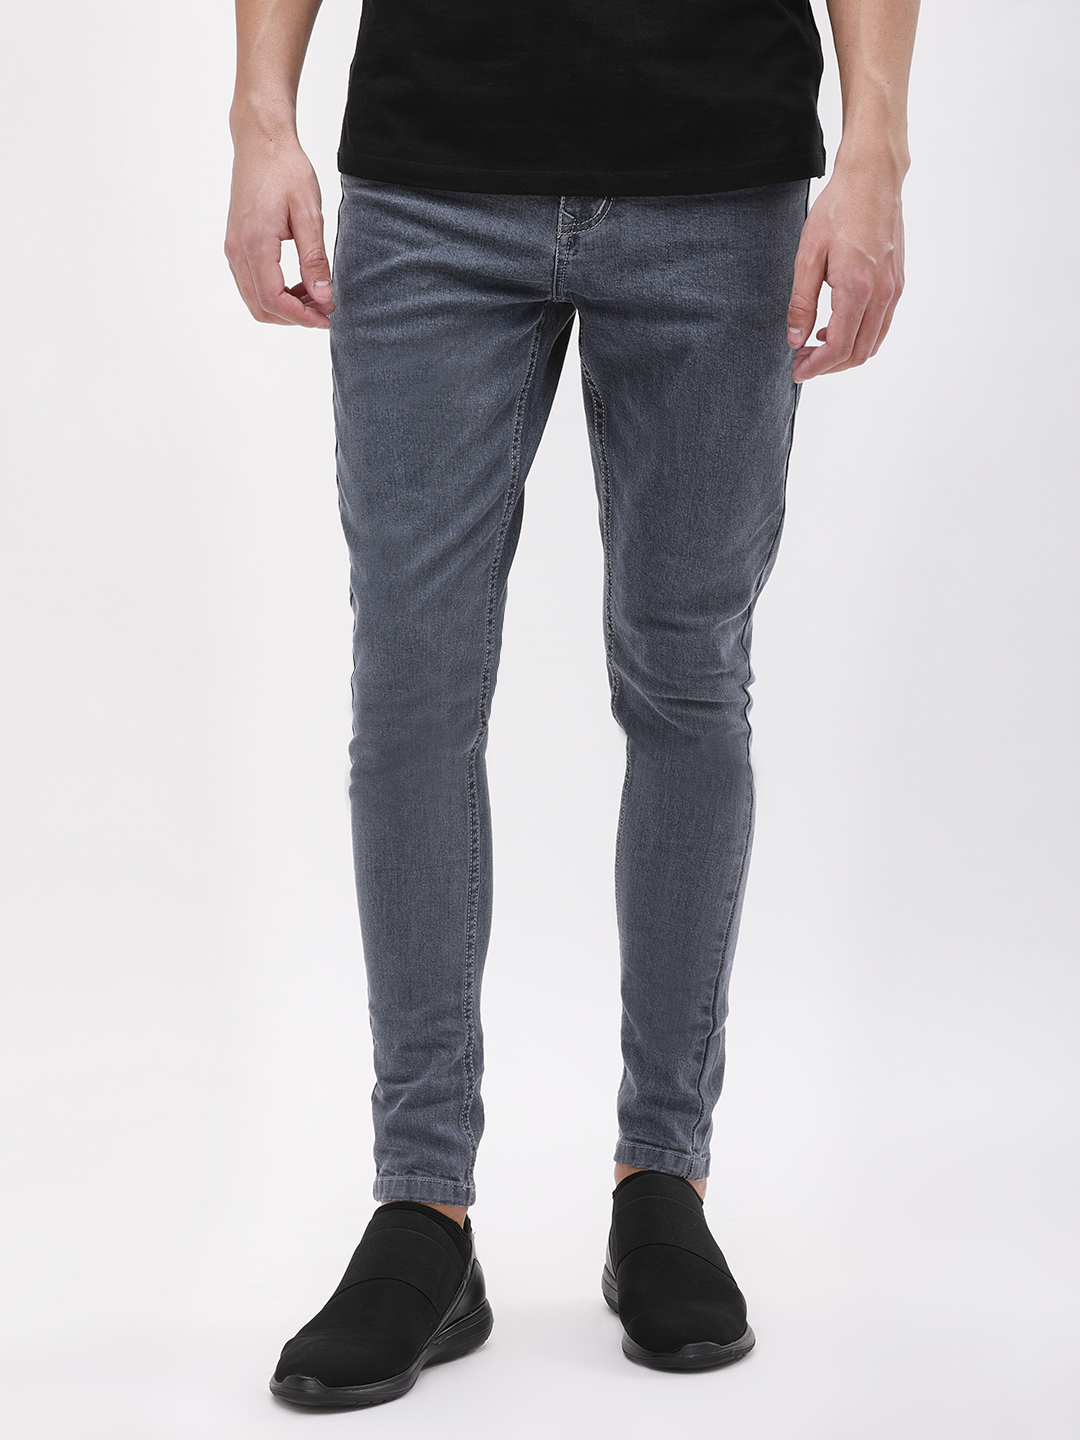 K Denim Grey KOOVS Basic Skinny Fit Jeans 1